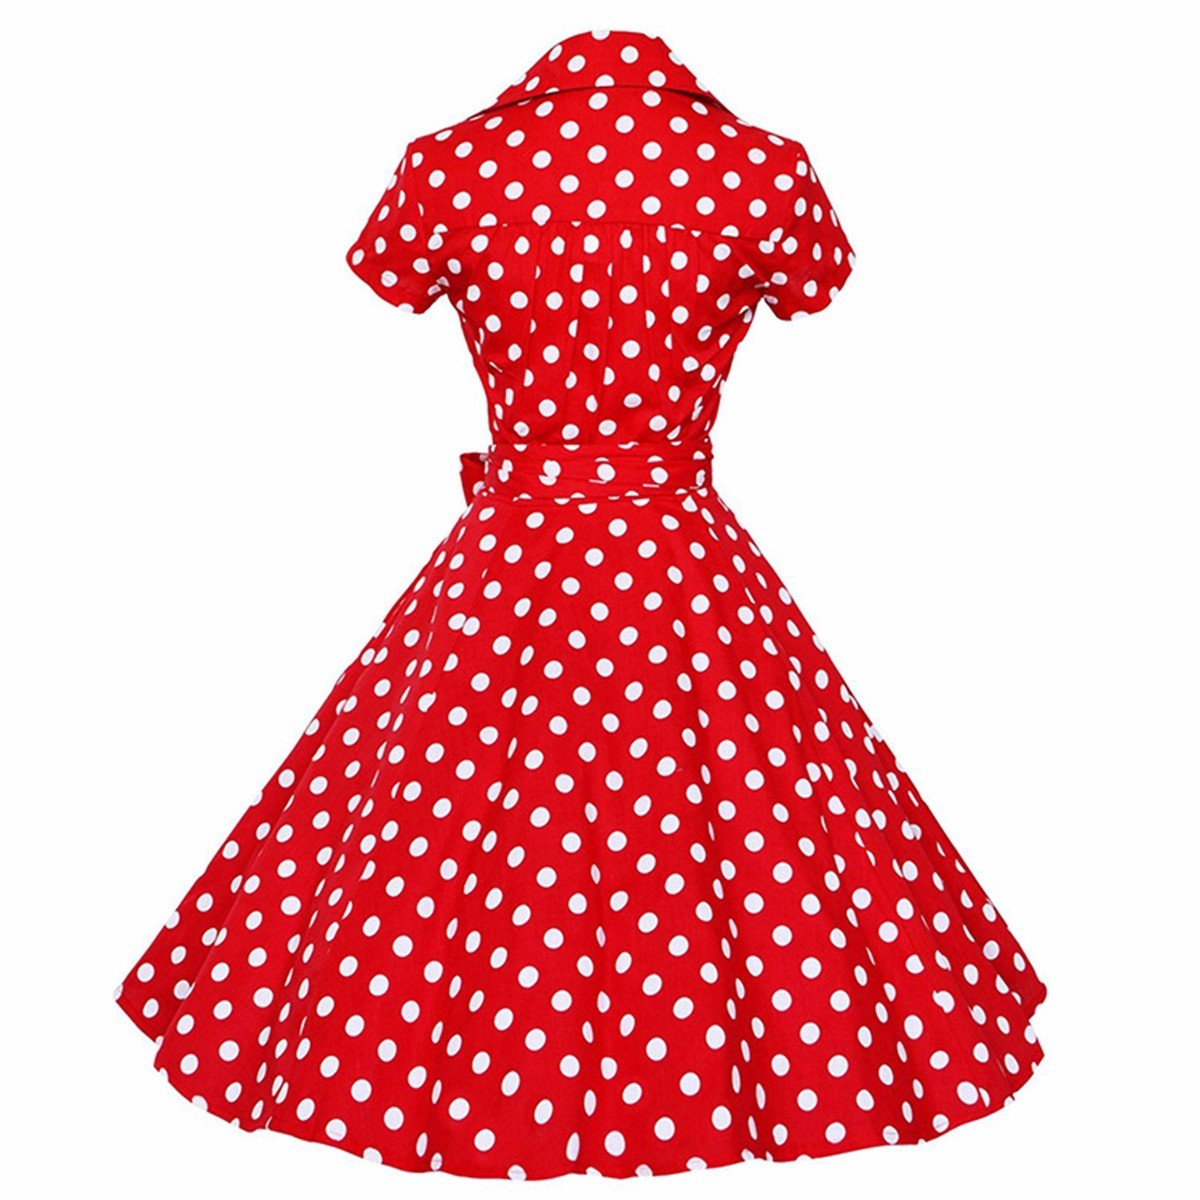 Samtree Womens 50s Style Polka Dot Short Sleeves Rockabilly Vintage Tea Dress 1